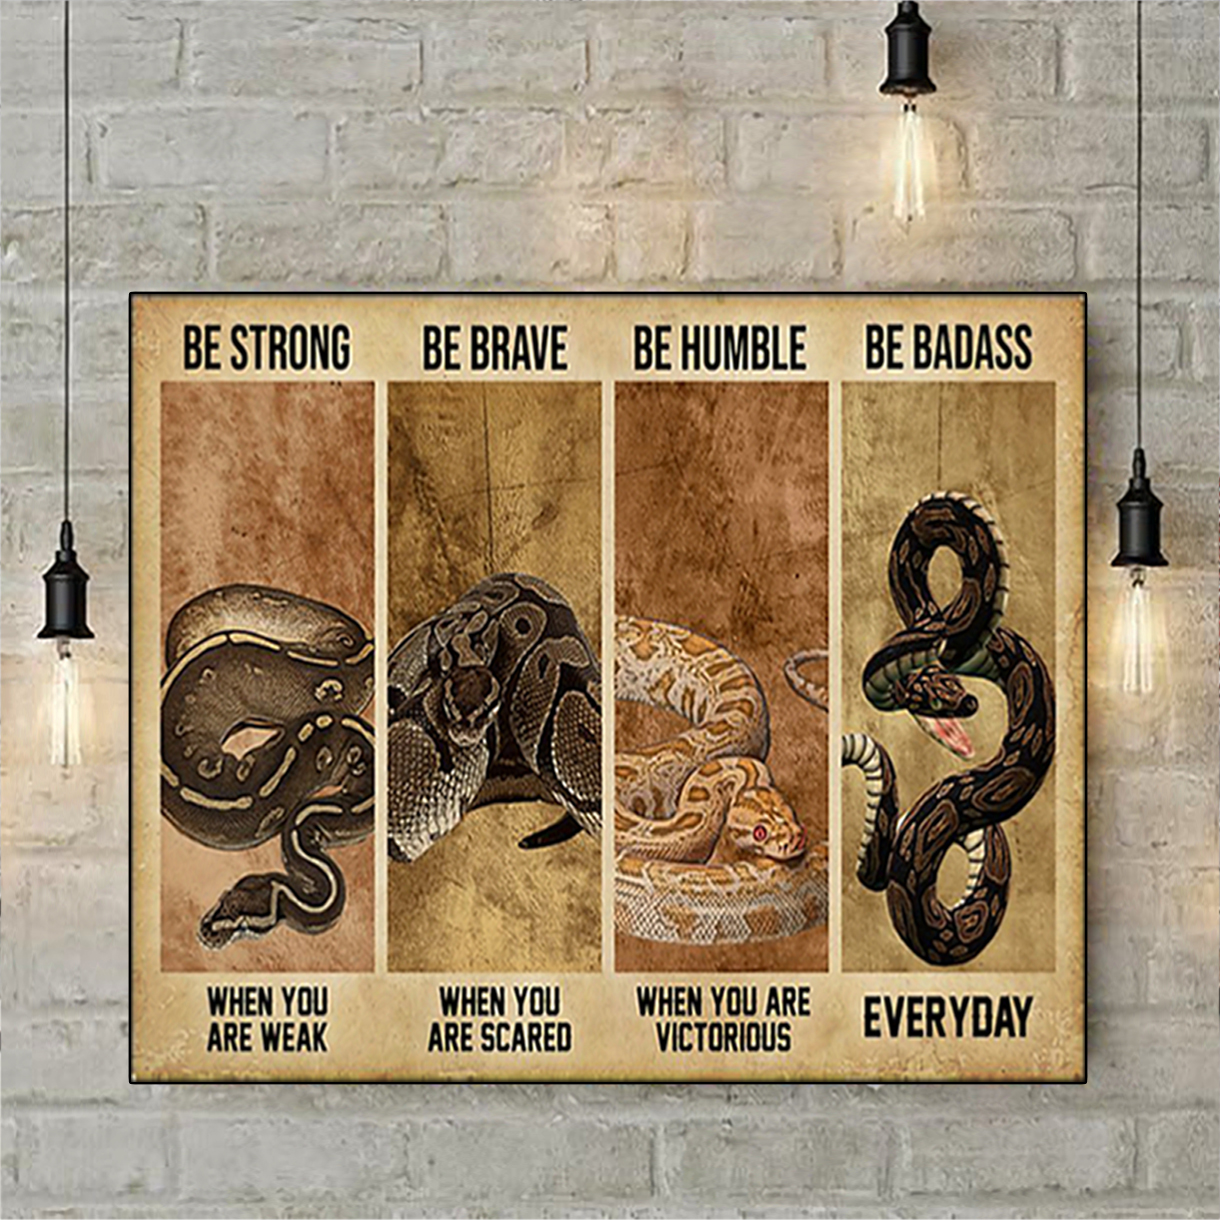 Ball python be strong be brave be humble be badass poster A2